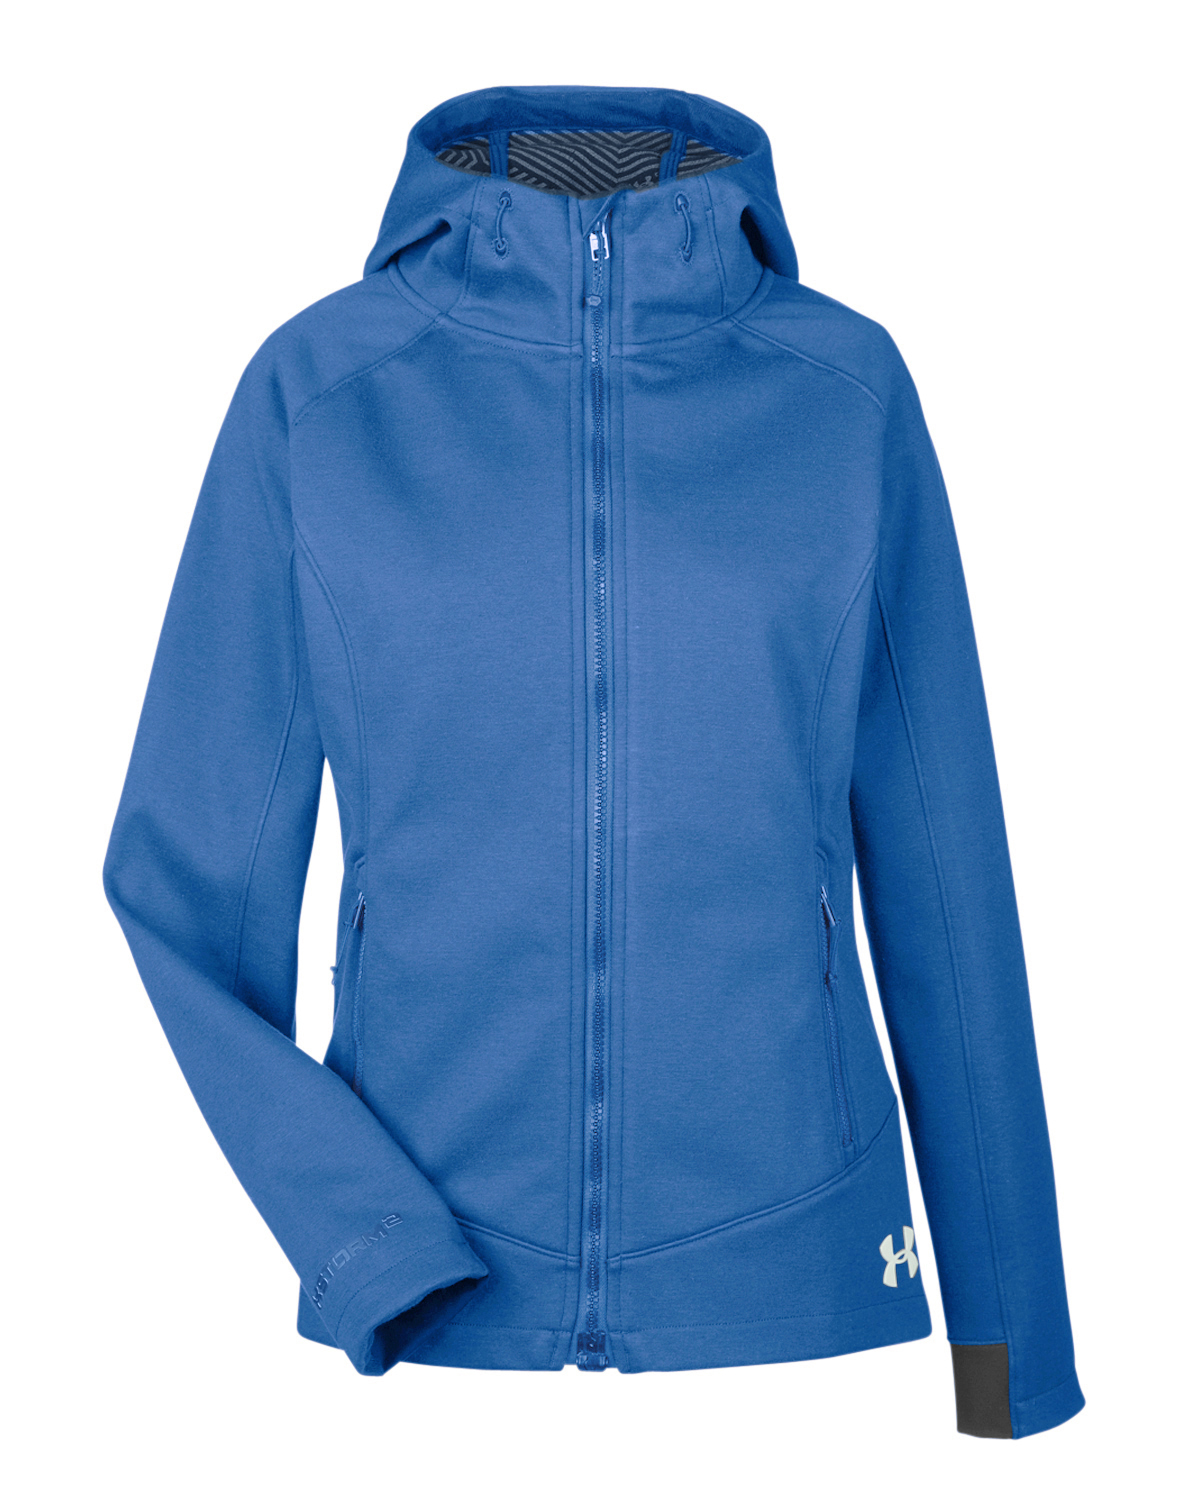 Under Armour 1280900 - Ladies CGI Dobson Soft Shell